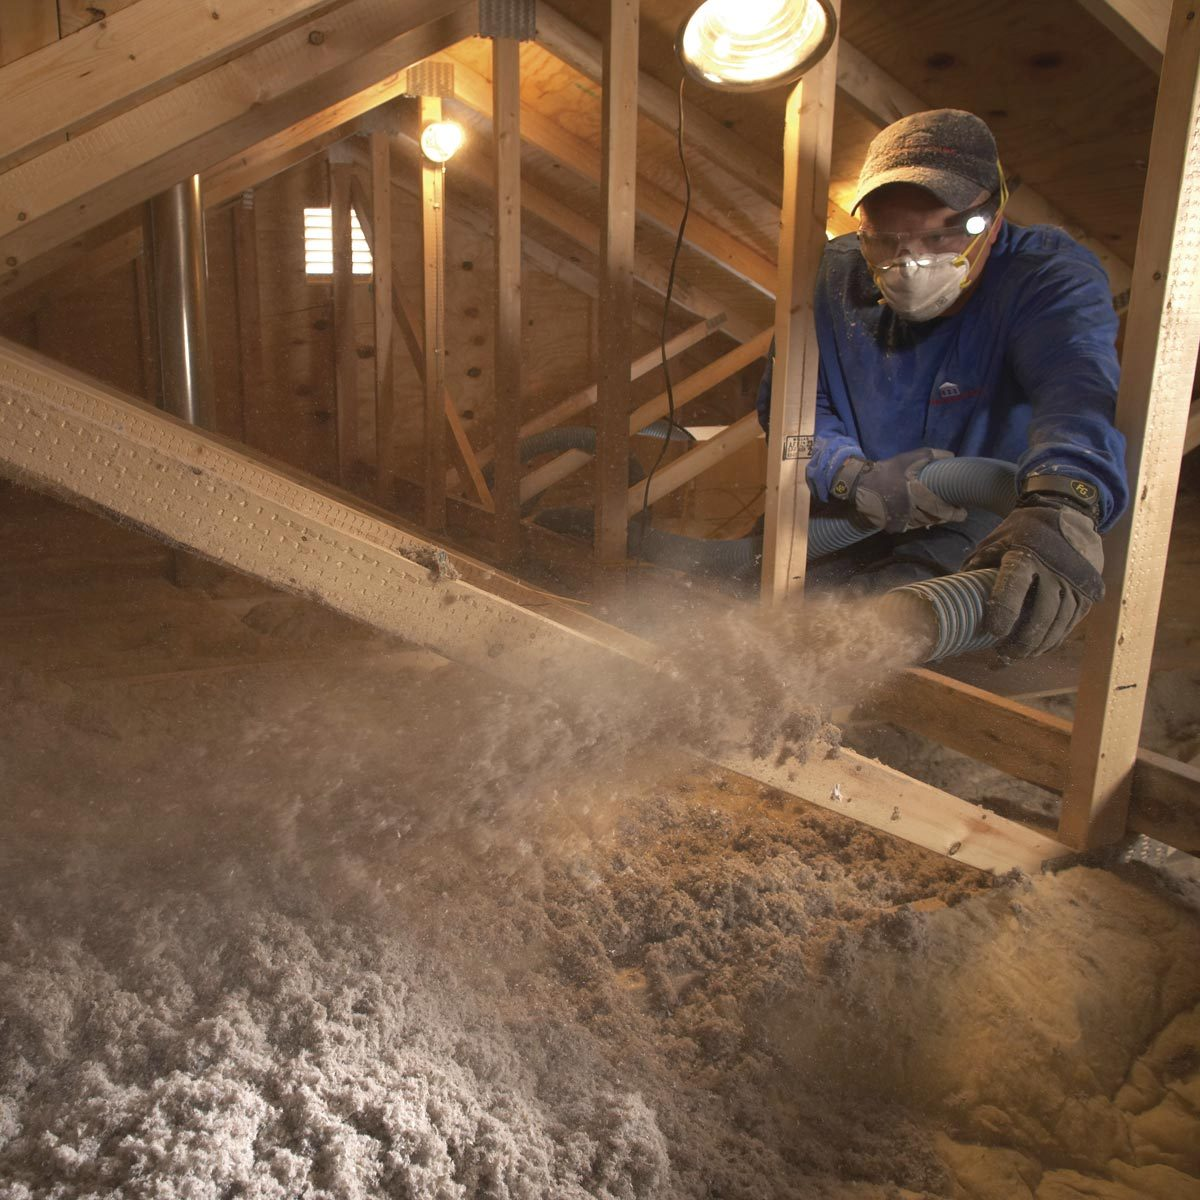 Best Way to Insulate Attic: Blown in insulation